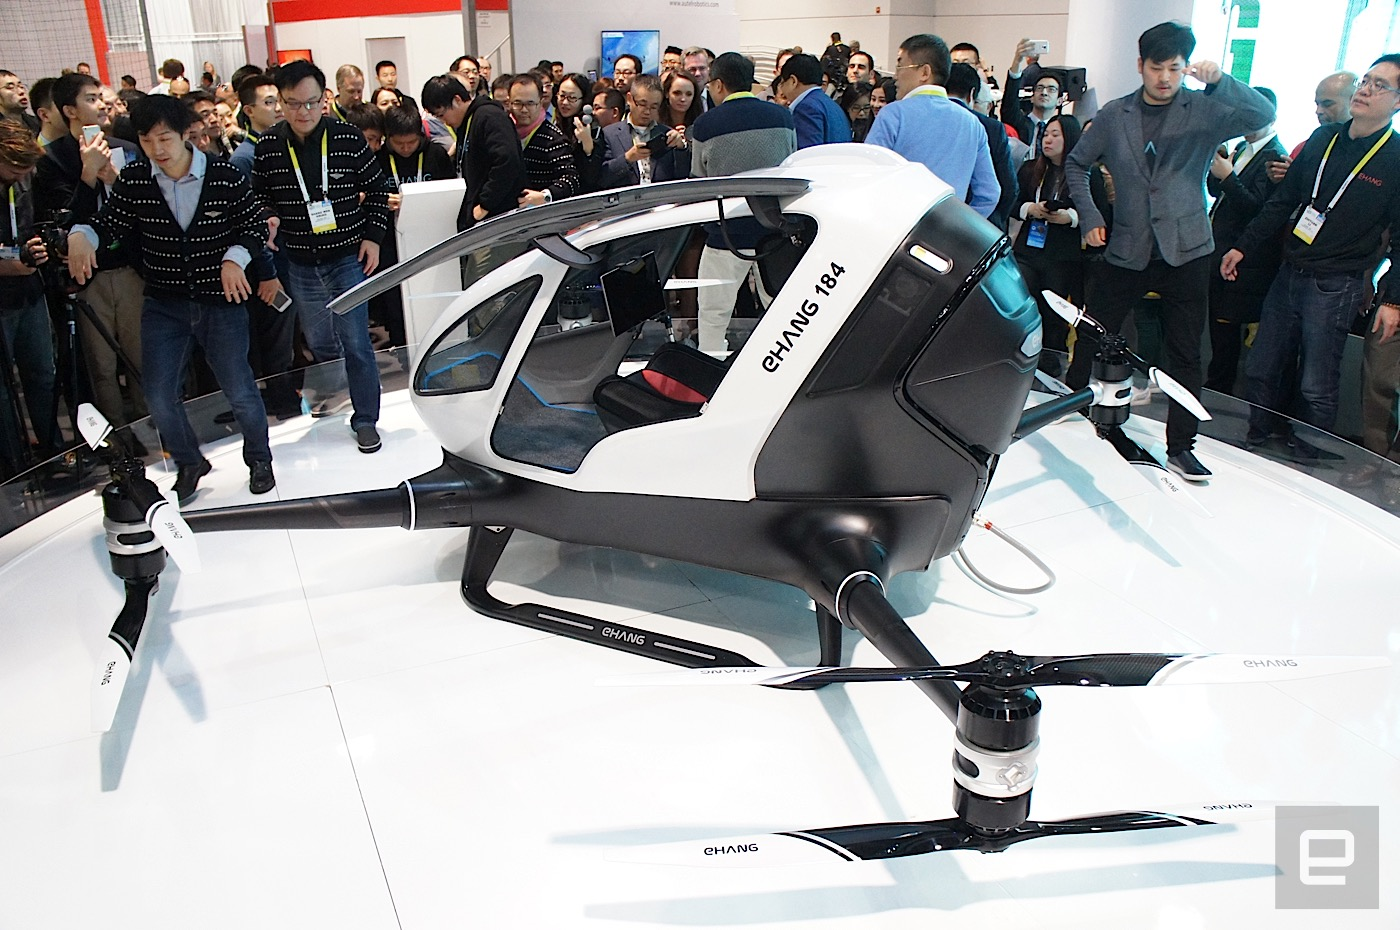 Passenger drone gets permission for US flight tests